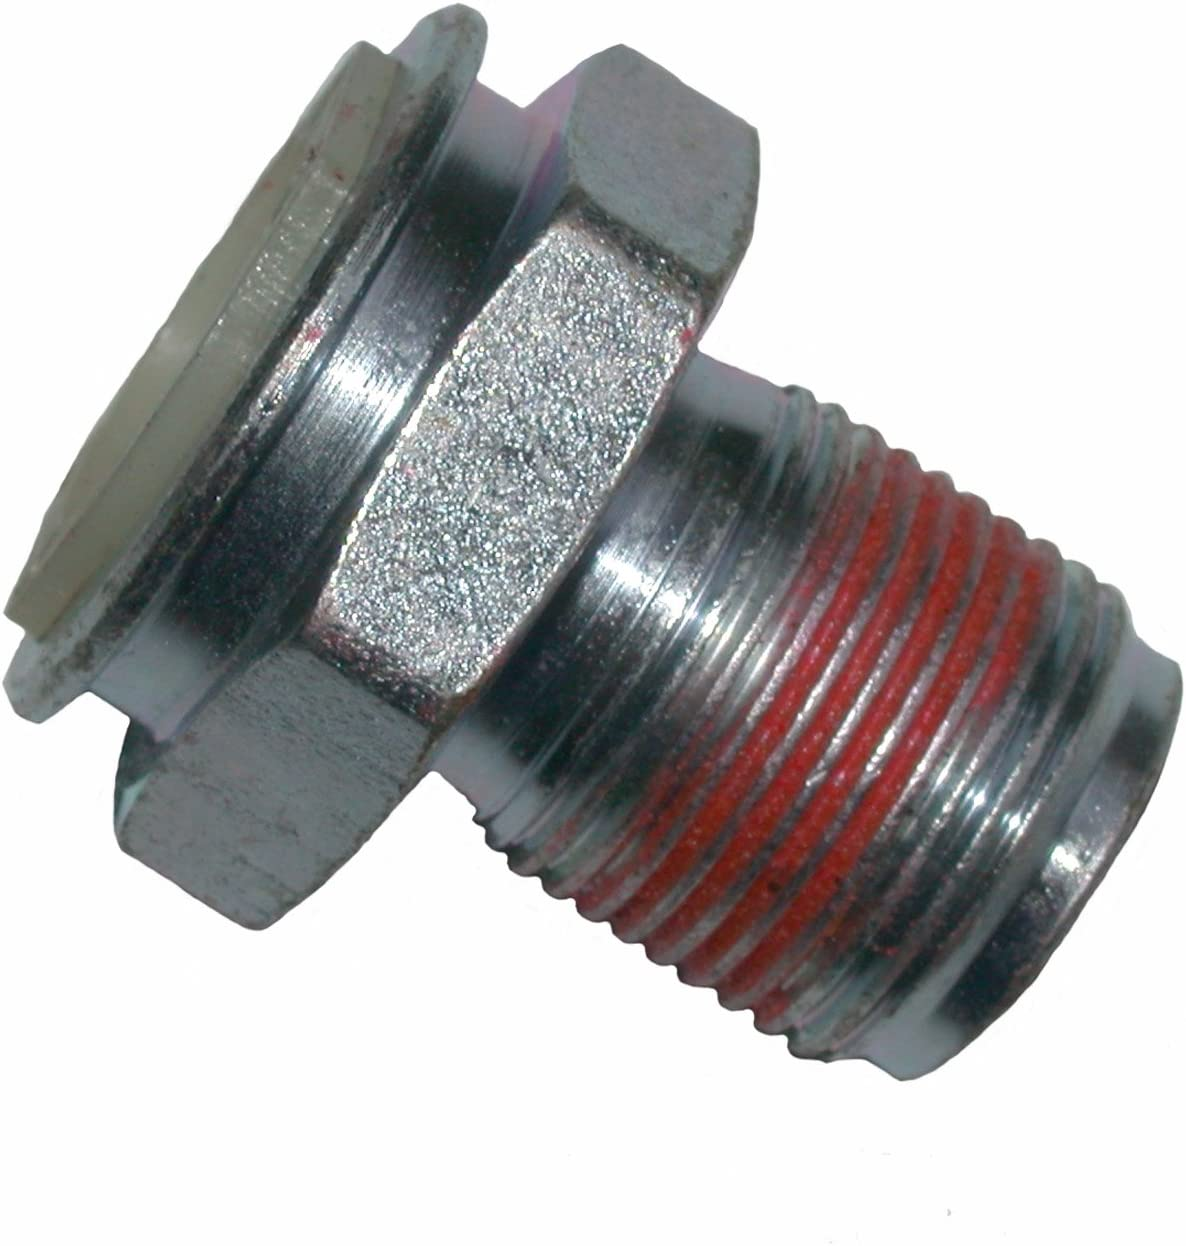 Needa Parts 800-601 wholesale Transmission Cooling Line Cheap bargain Connector